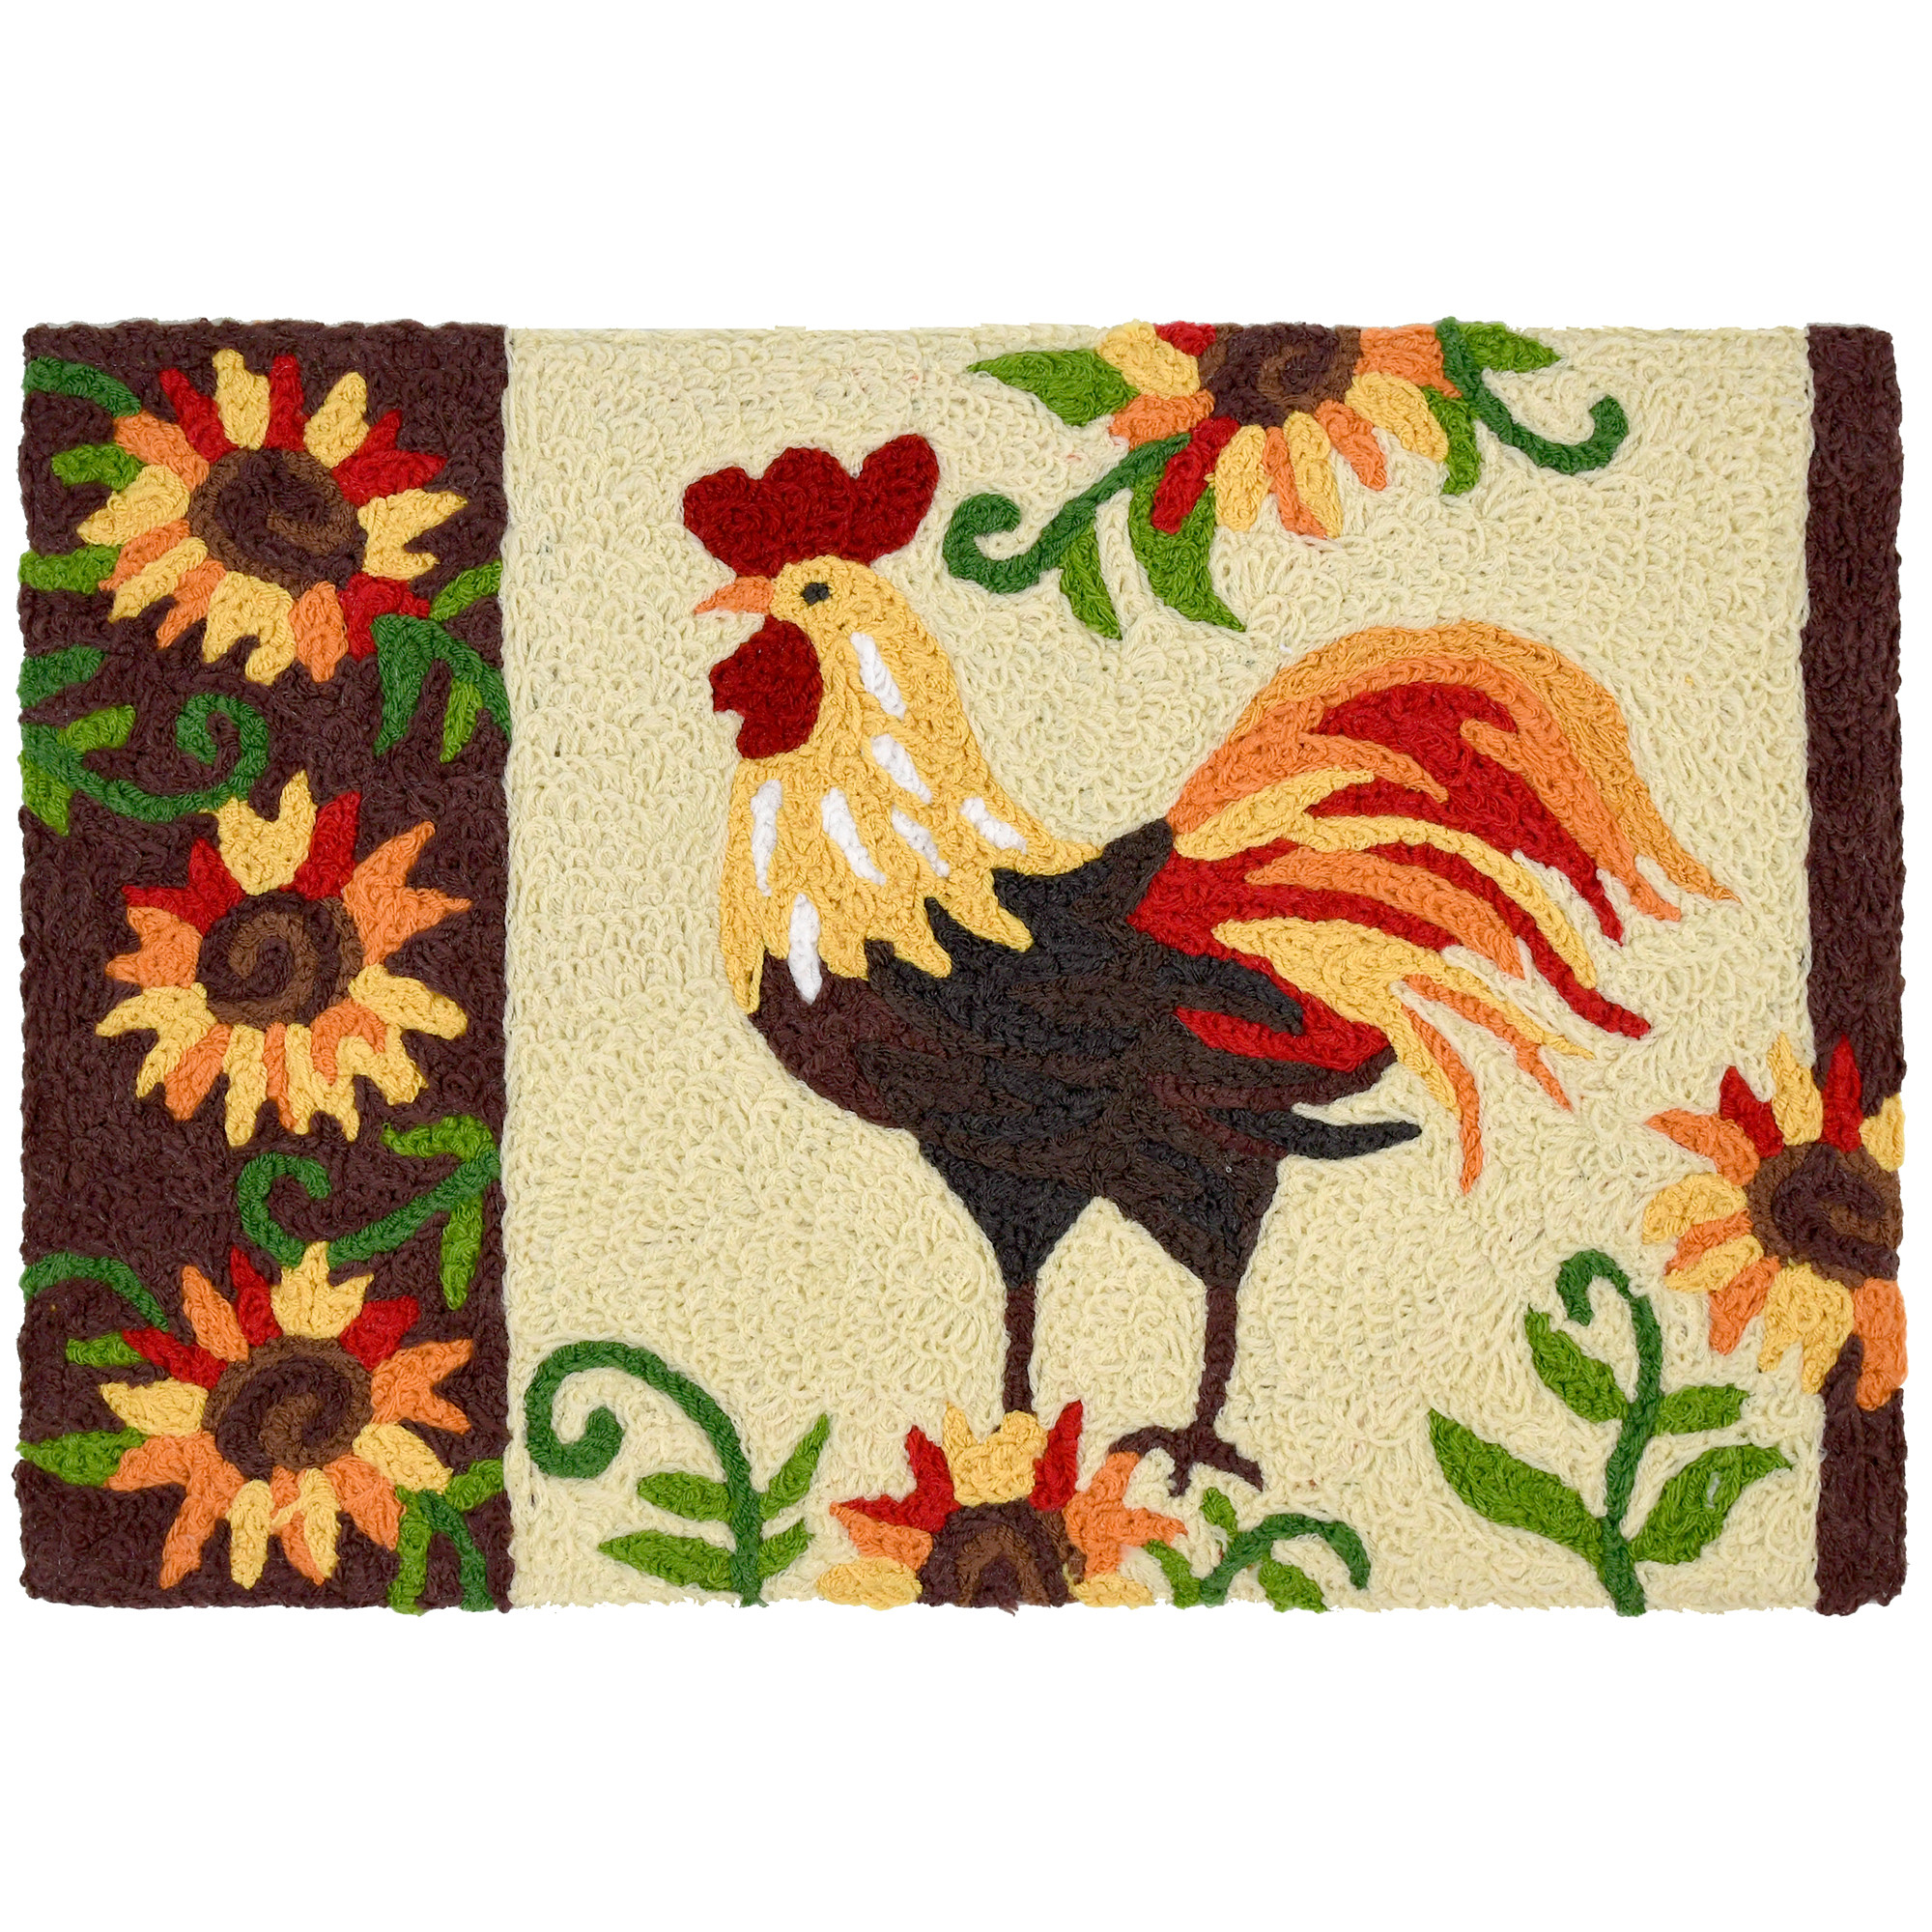 The soft, fringed plumes of the focal rooster are complemented by the presence of golden sunflowers on this Jellybean® accent rug designed by Elena Vladykina. Warm tones of brown and gold make this throw rug an inviting accent to indoor and outdoor spaces. Machine washable polyester.